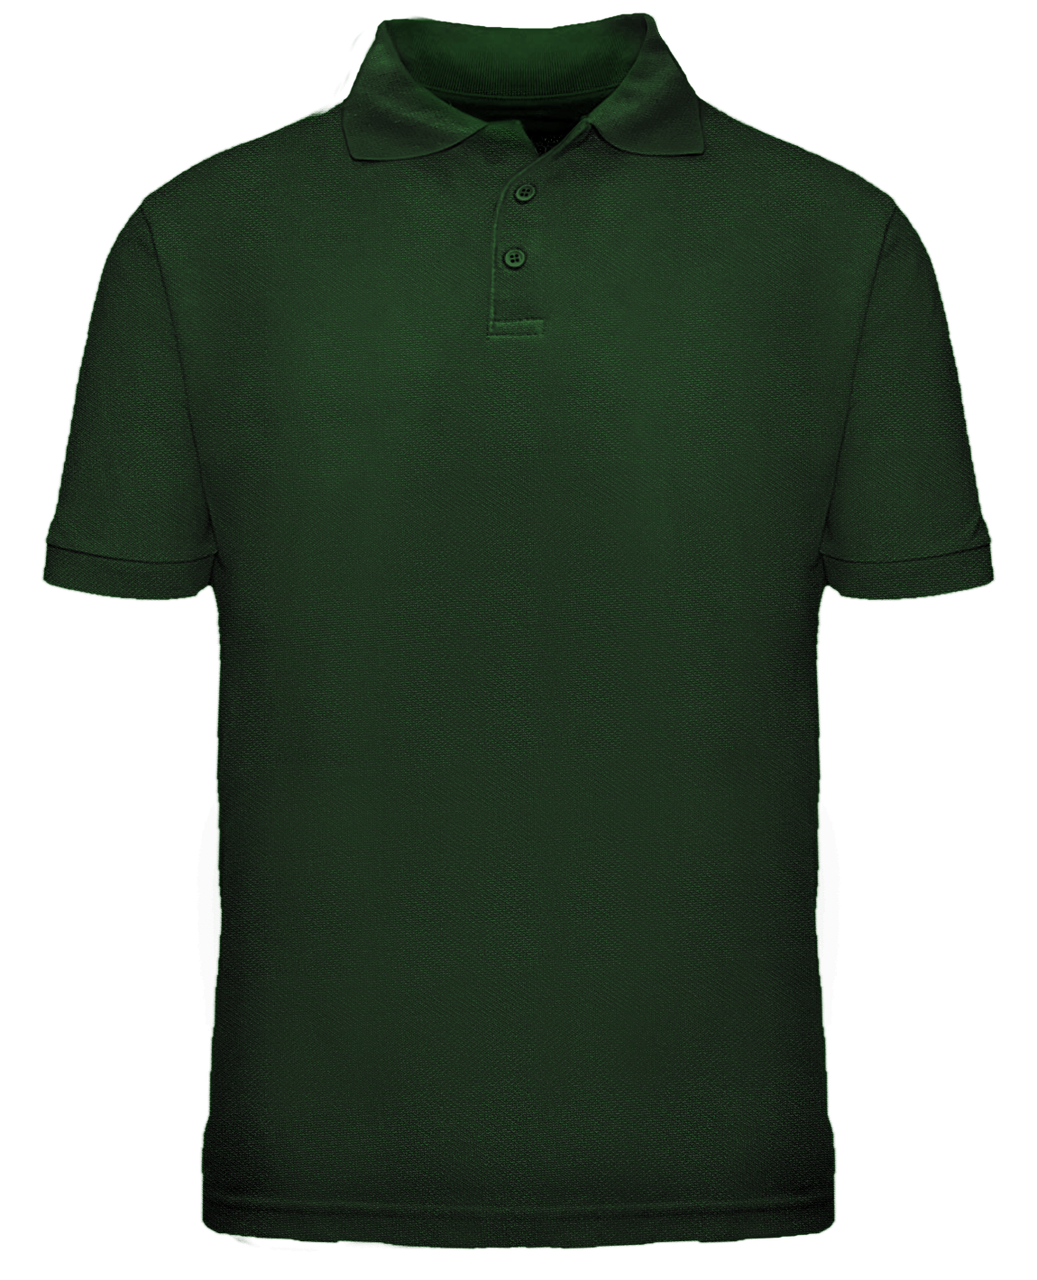 79ddbe07 ... Toddler Short Sleeve School Uniform Polo - Hunter Green. Image 1. Click  to enlarge